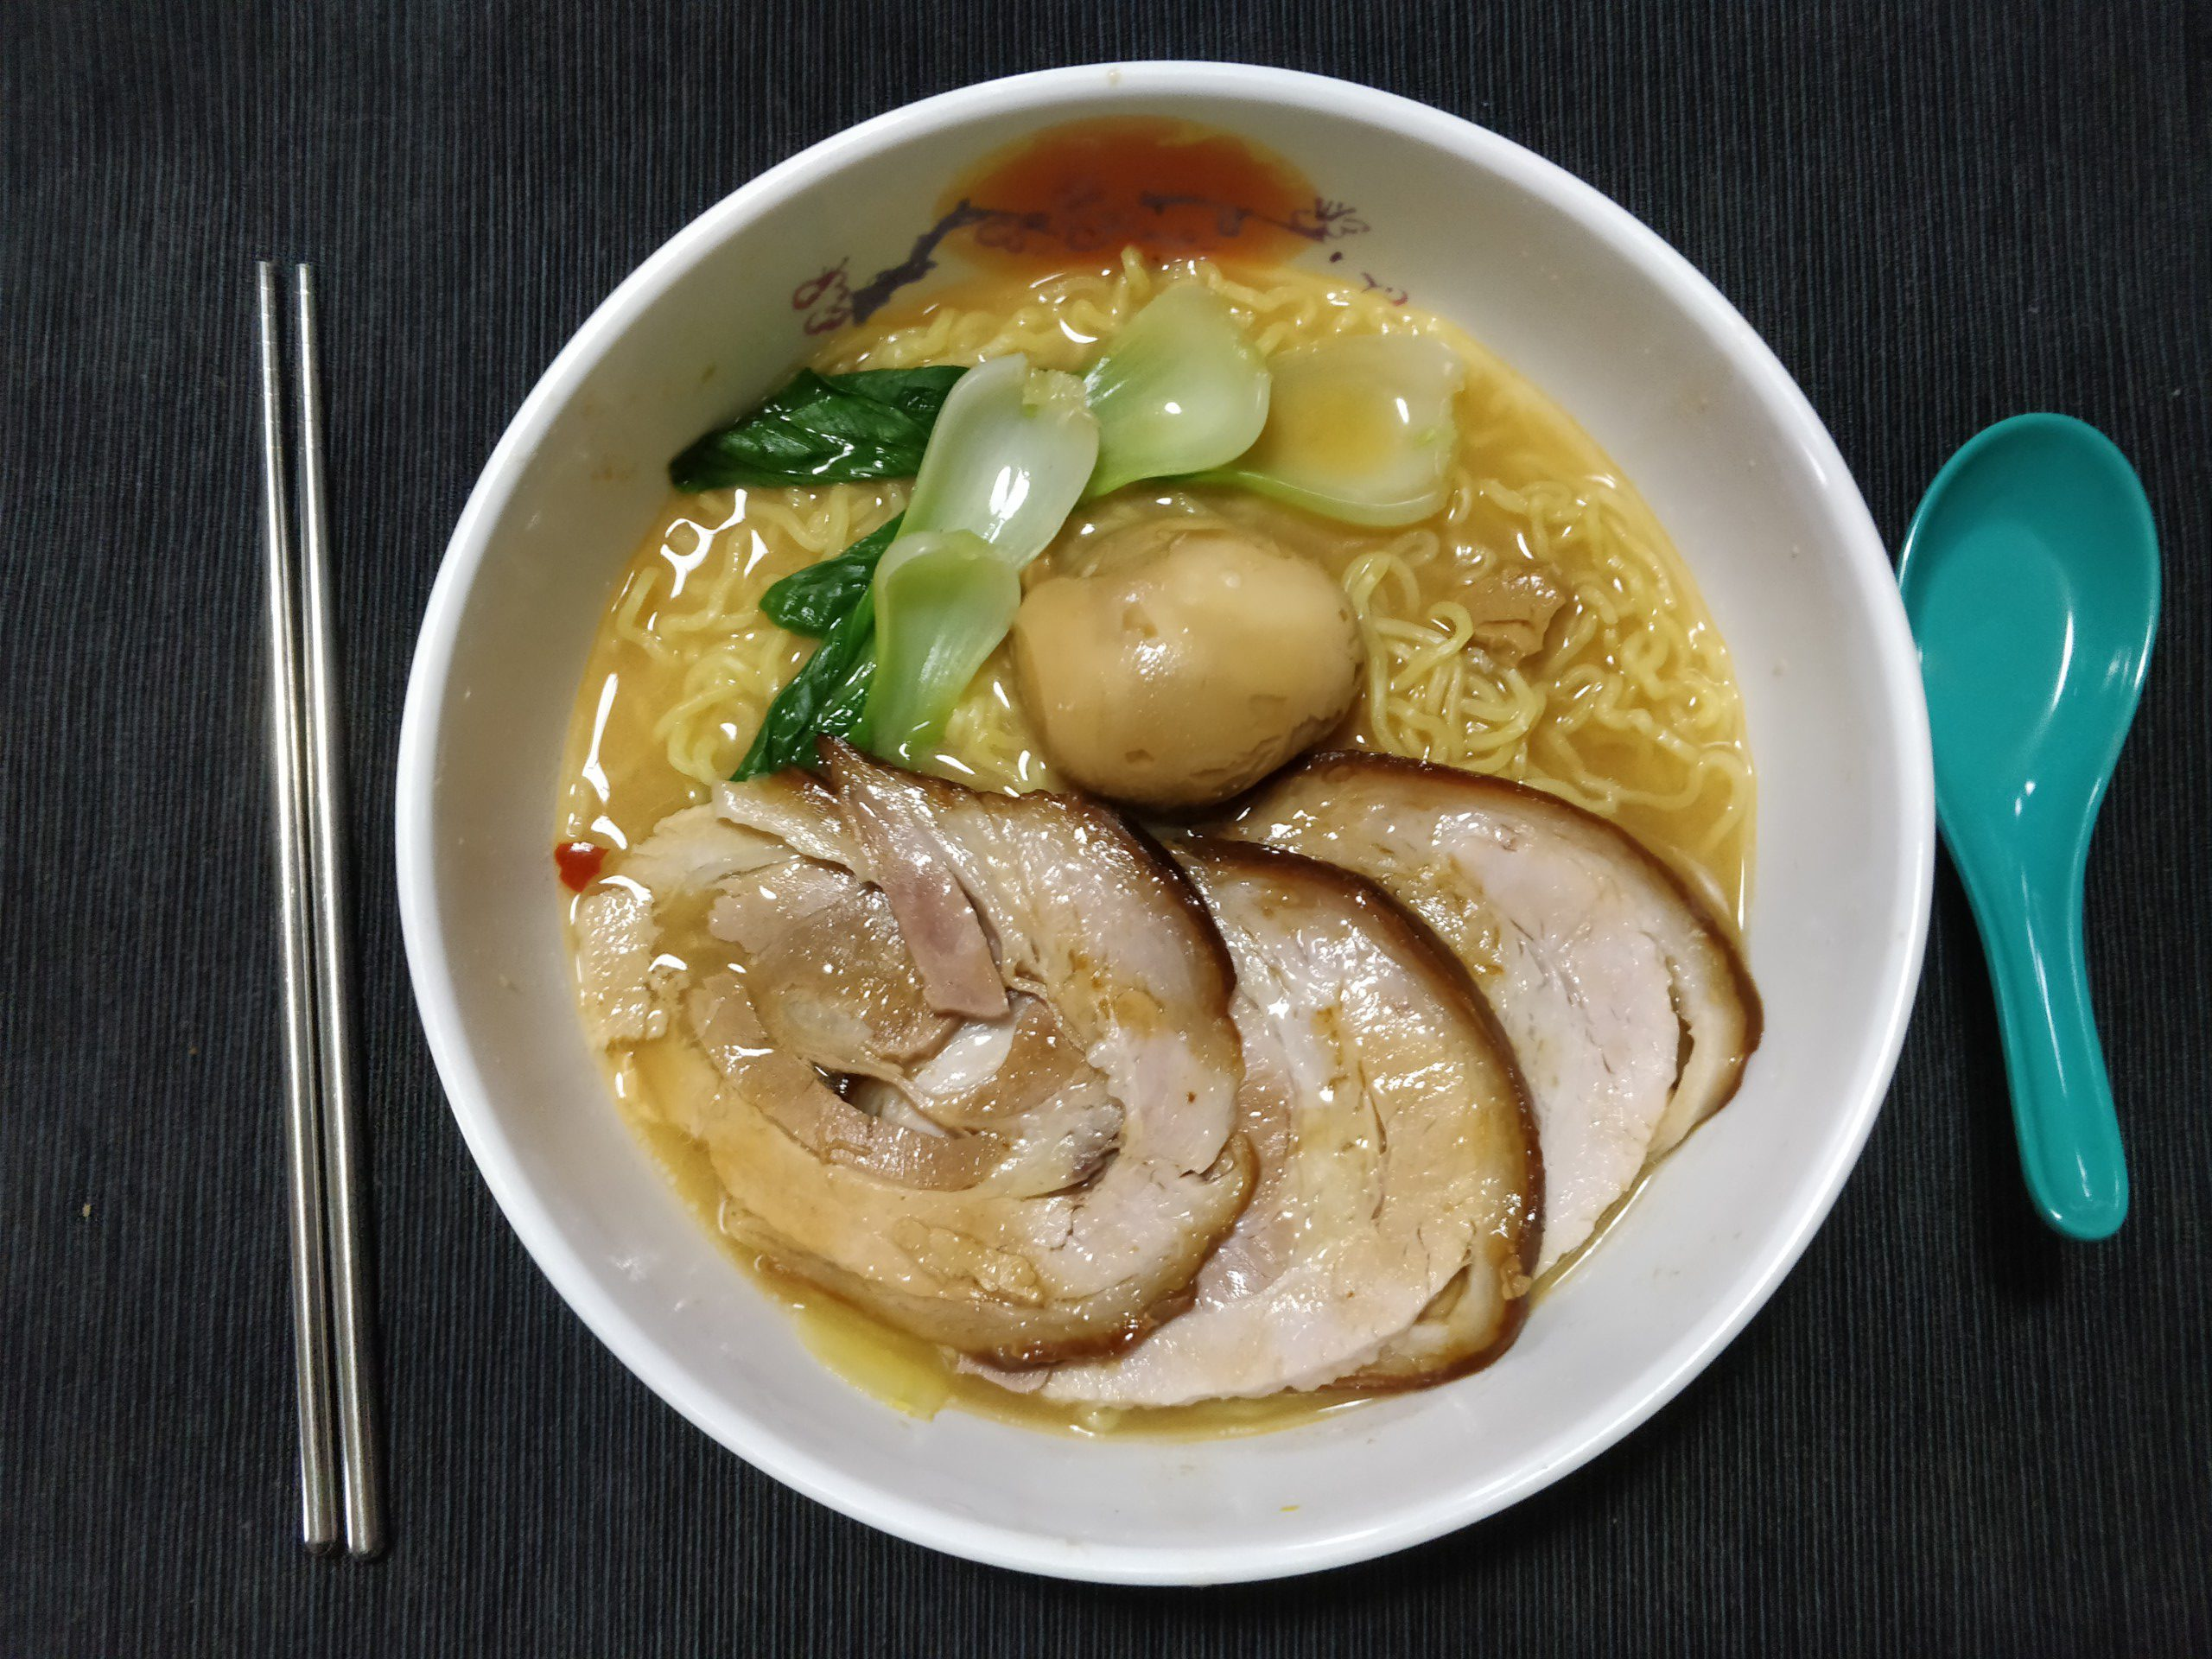 bowl of miso ramen featuring chashu pork, marinated bok choy (ohitashi), and a marinated egg